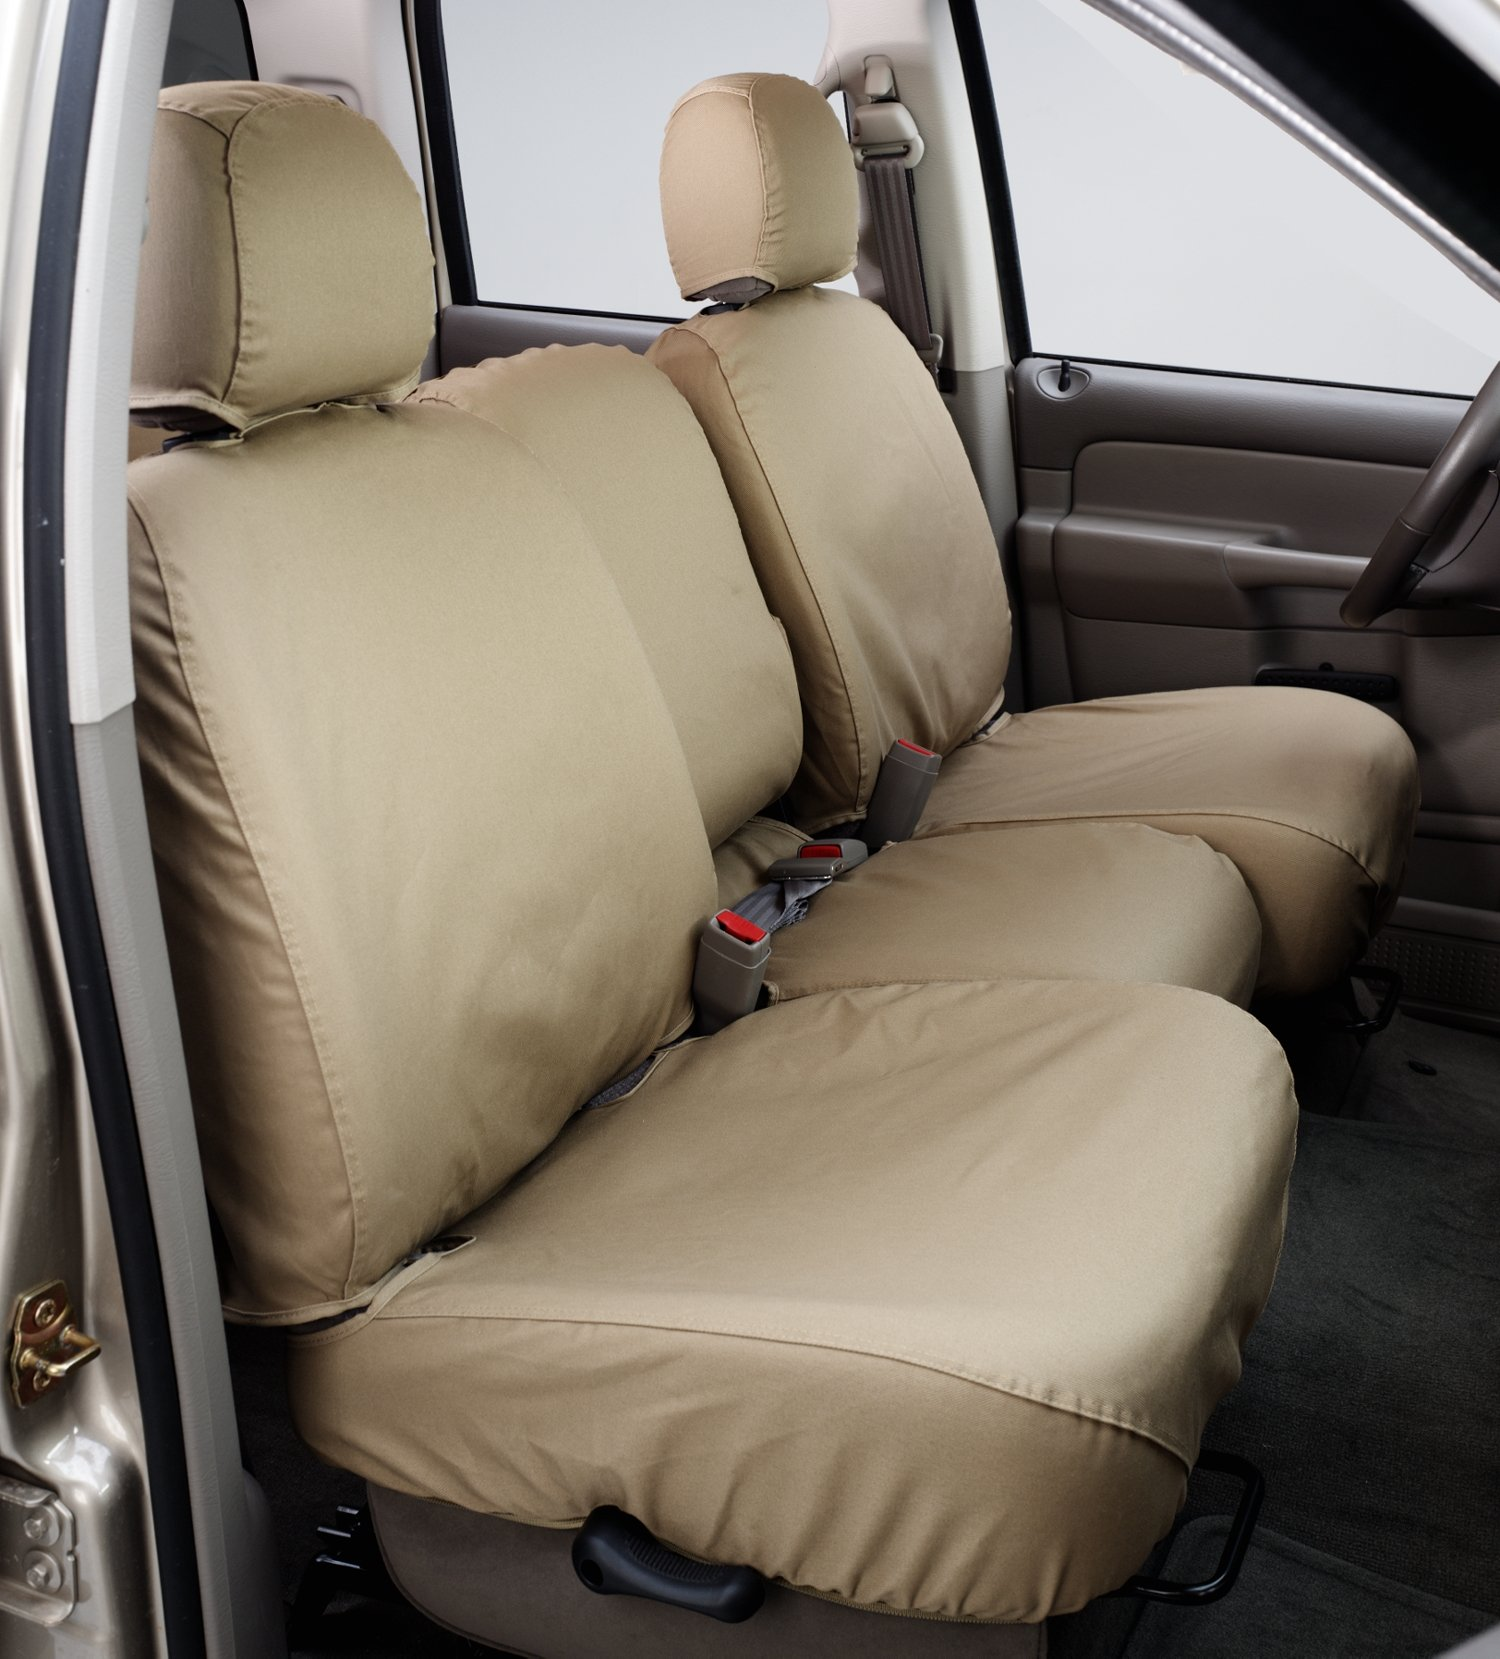 Covercraft SeatSaver Second Row Custom Fit Seat Cover for Select Dodge Ram Pickup Models Polycotton Wet Sand